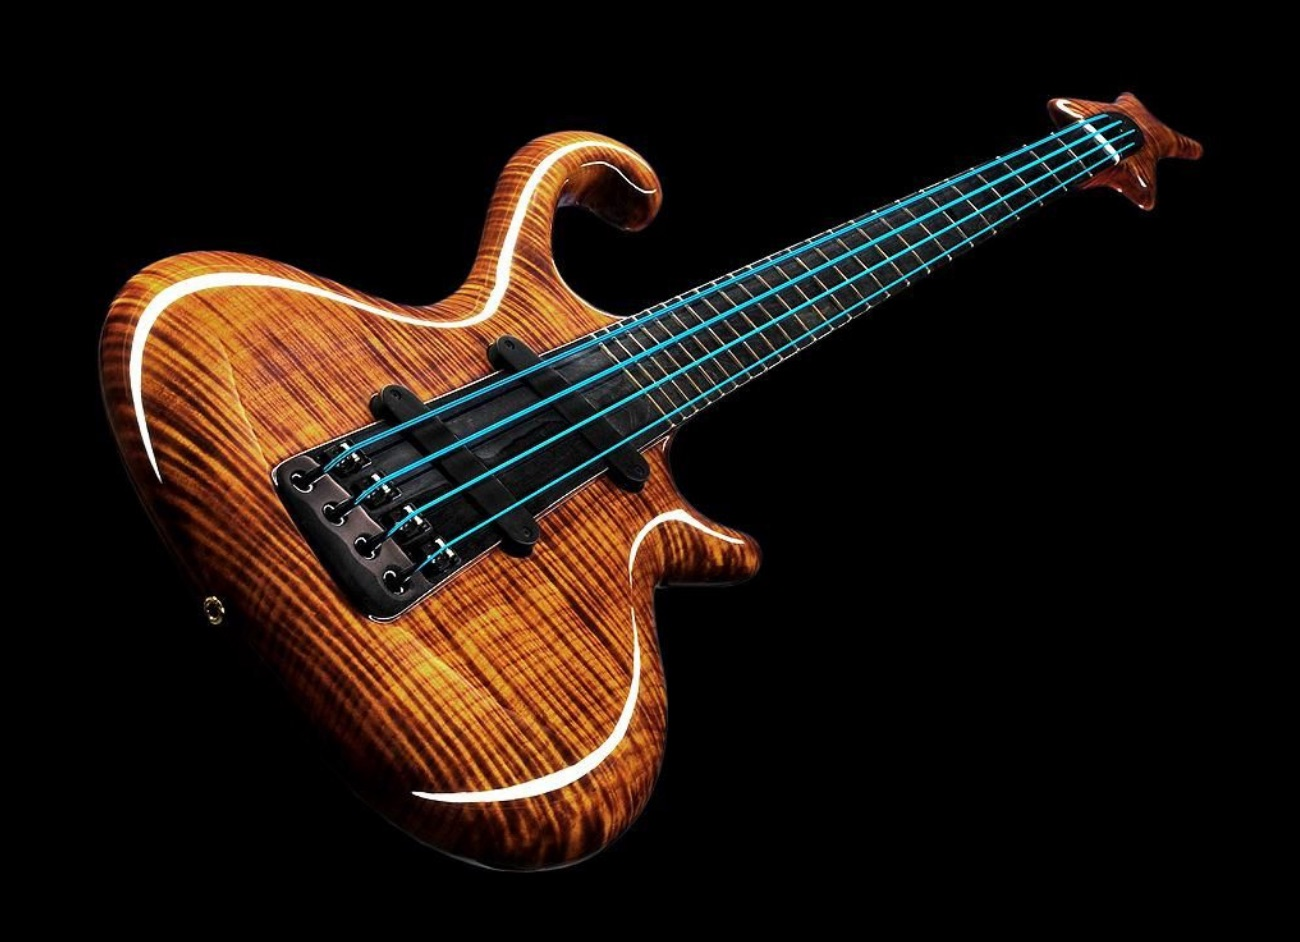 most expensive bass guitars in the world, jens ritter concept bass price